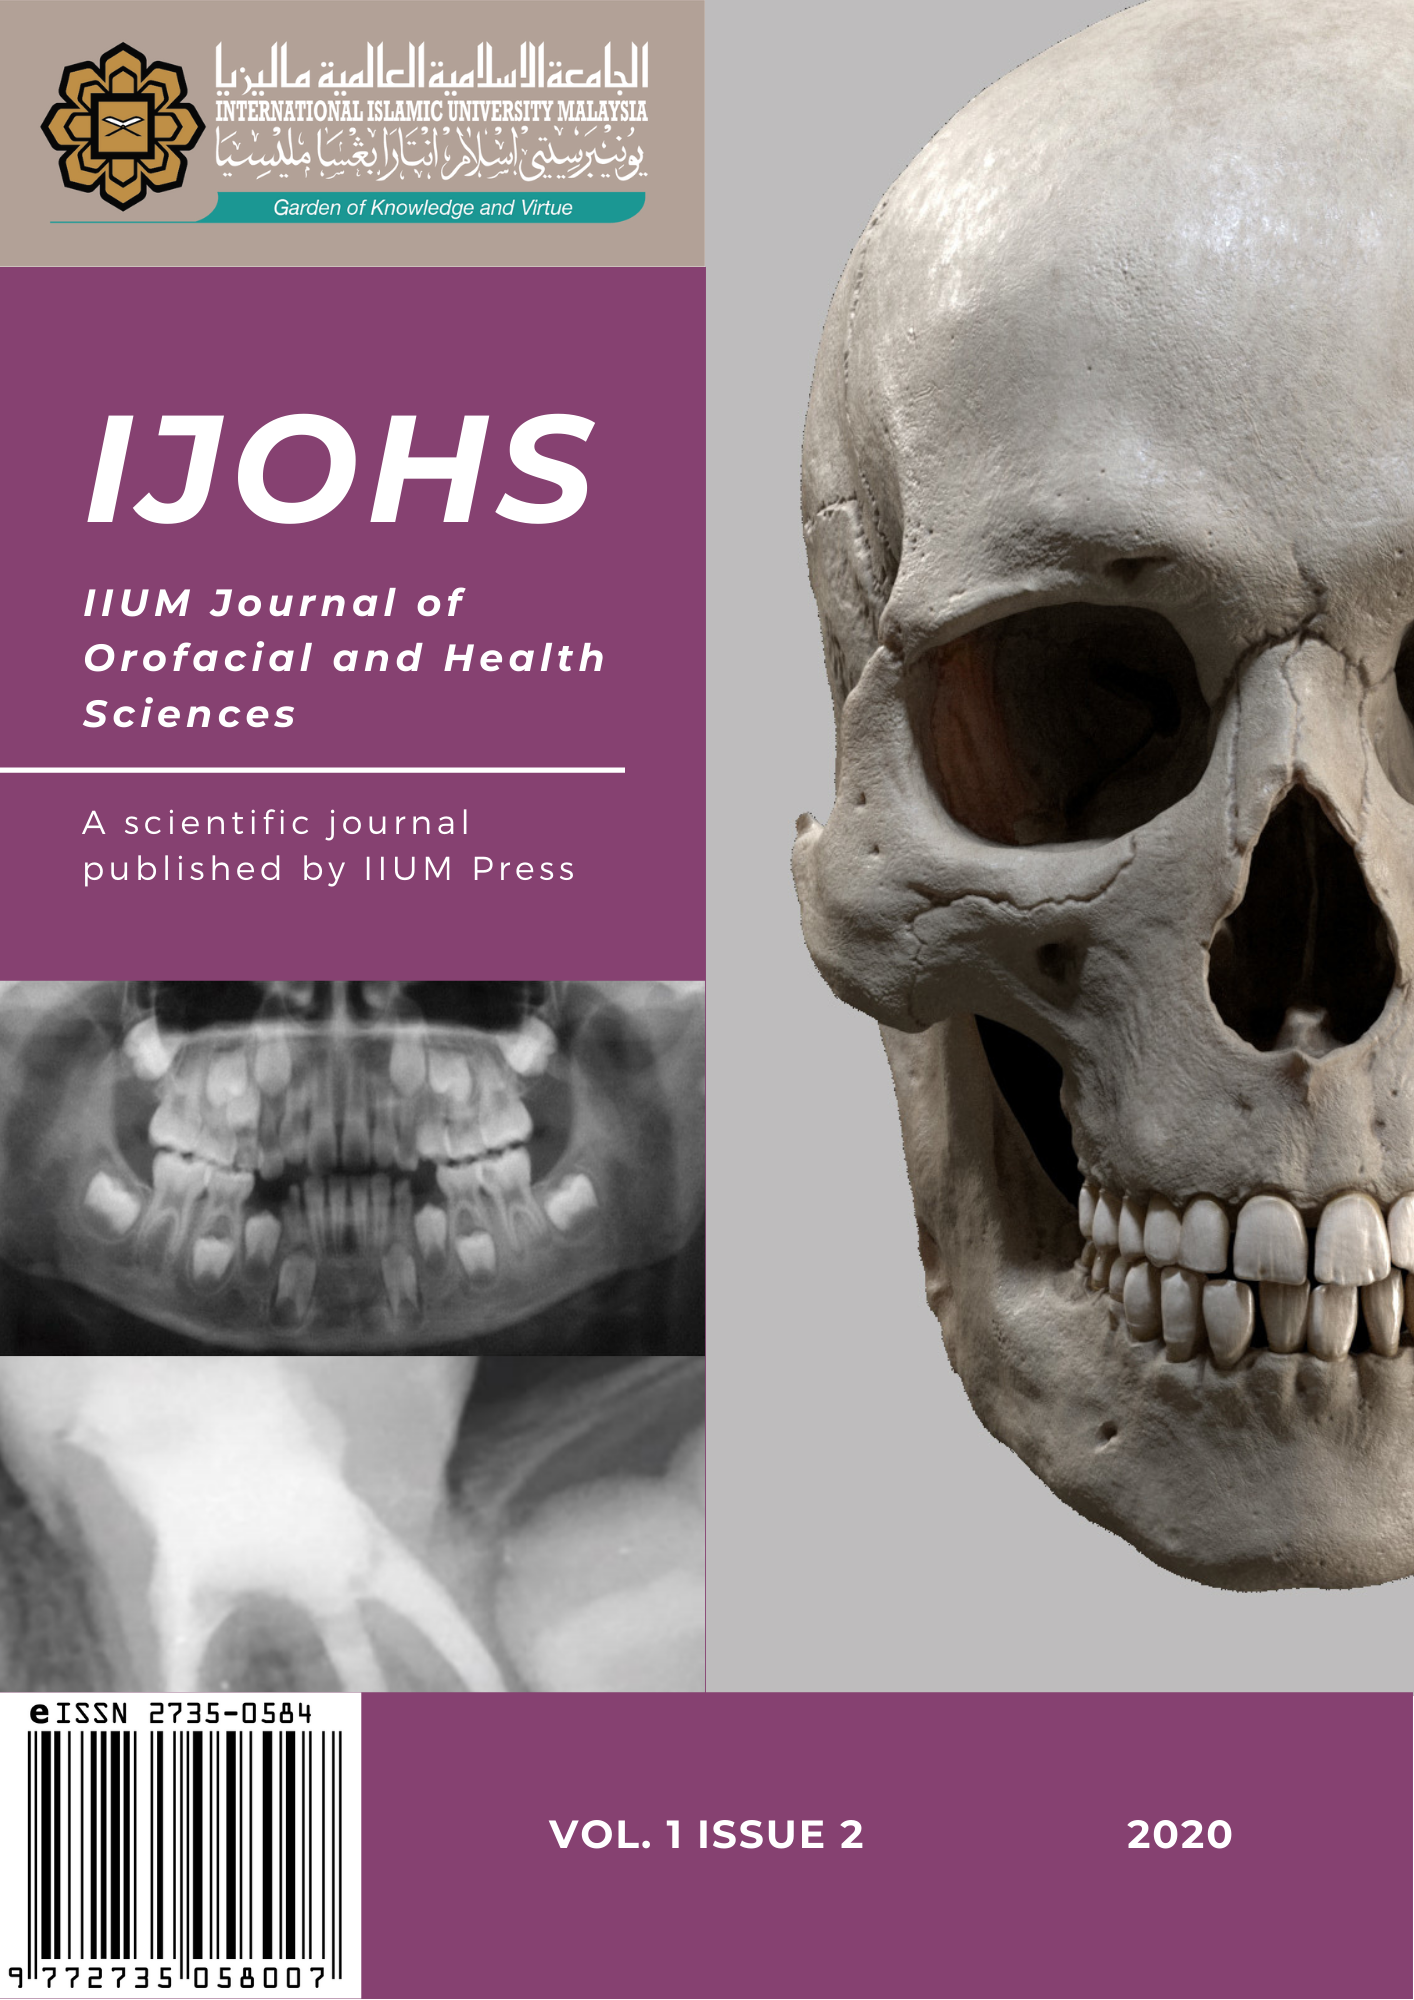 View Vol. 1 No. 2 (2020): IIUM Journal of Orofacial and Health Sciences